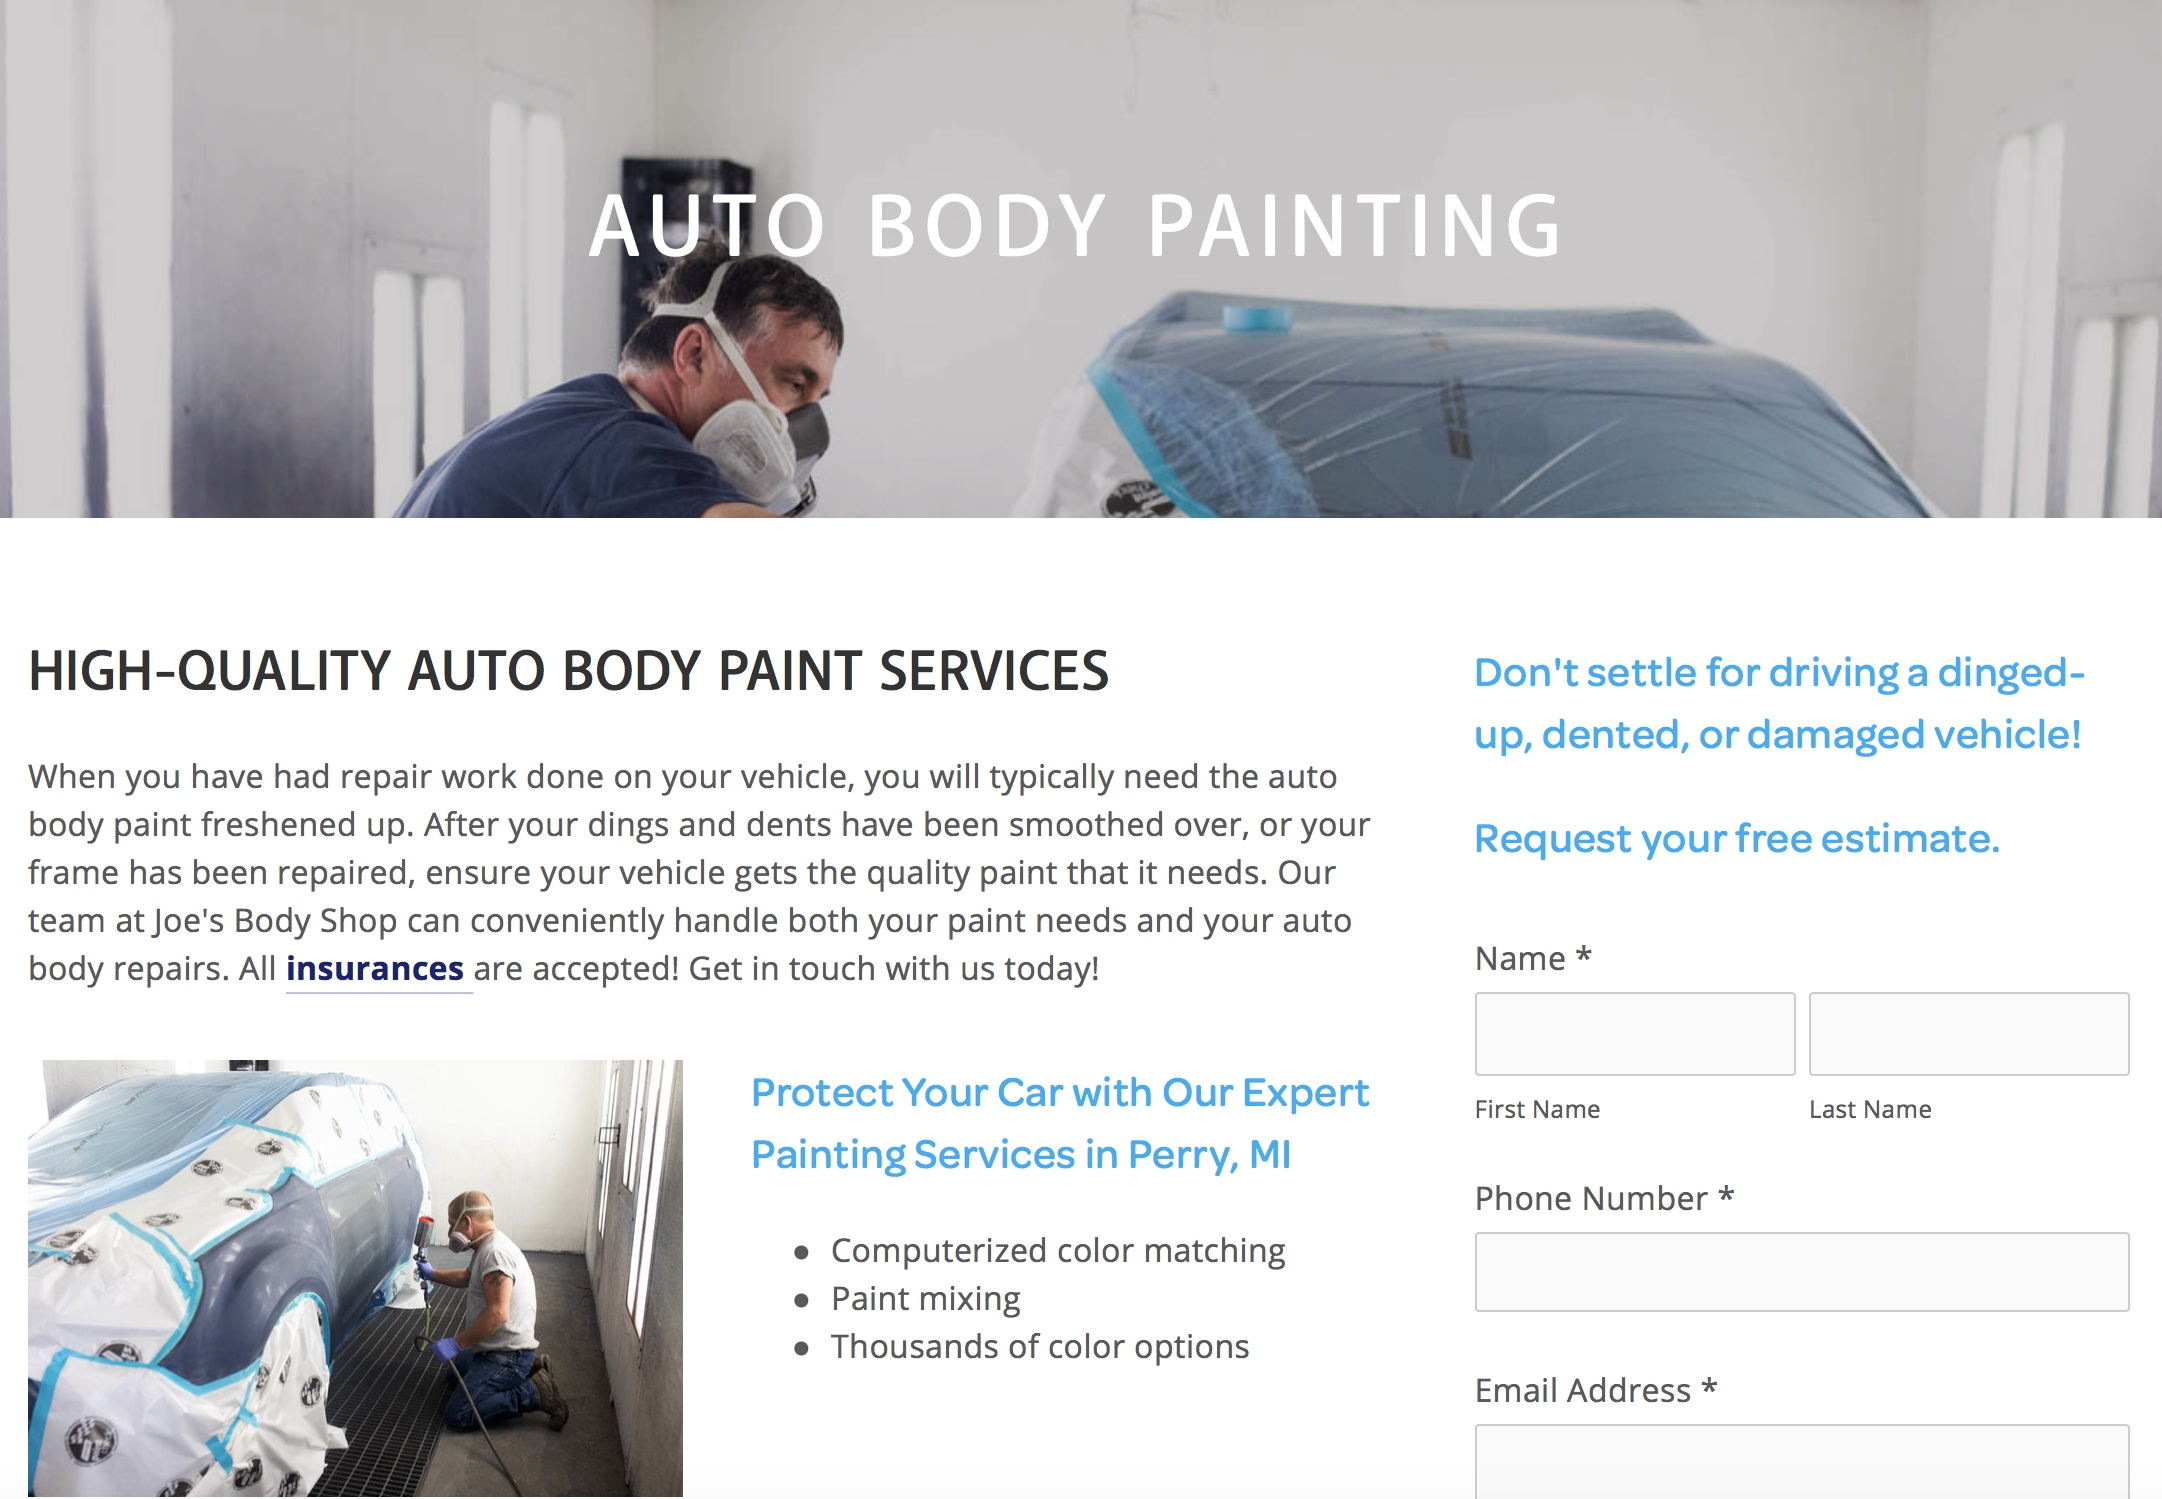 Joes Body - Auto Painting